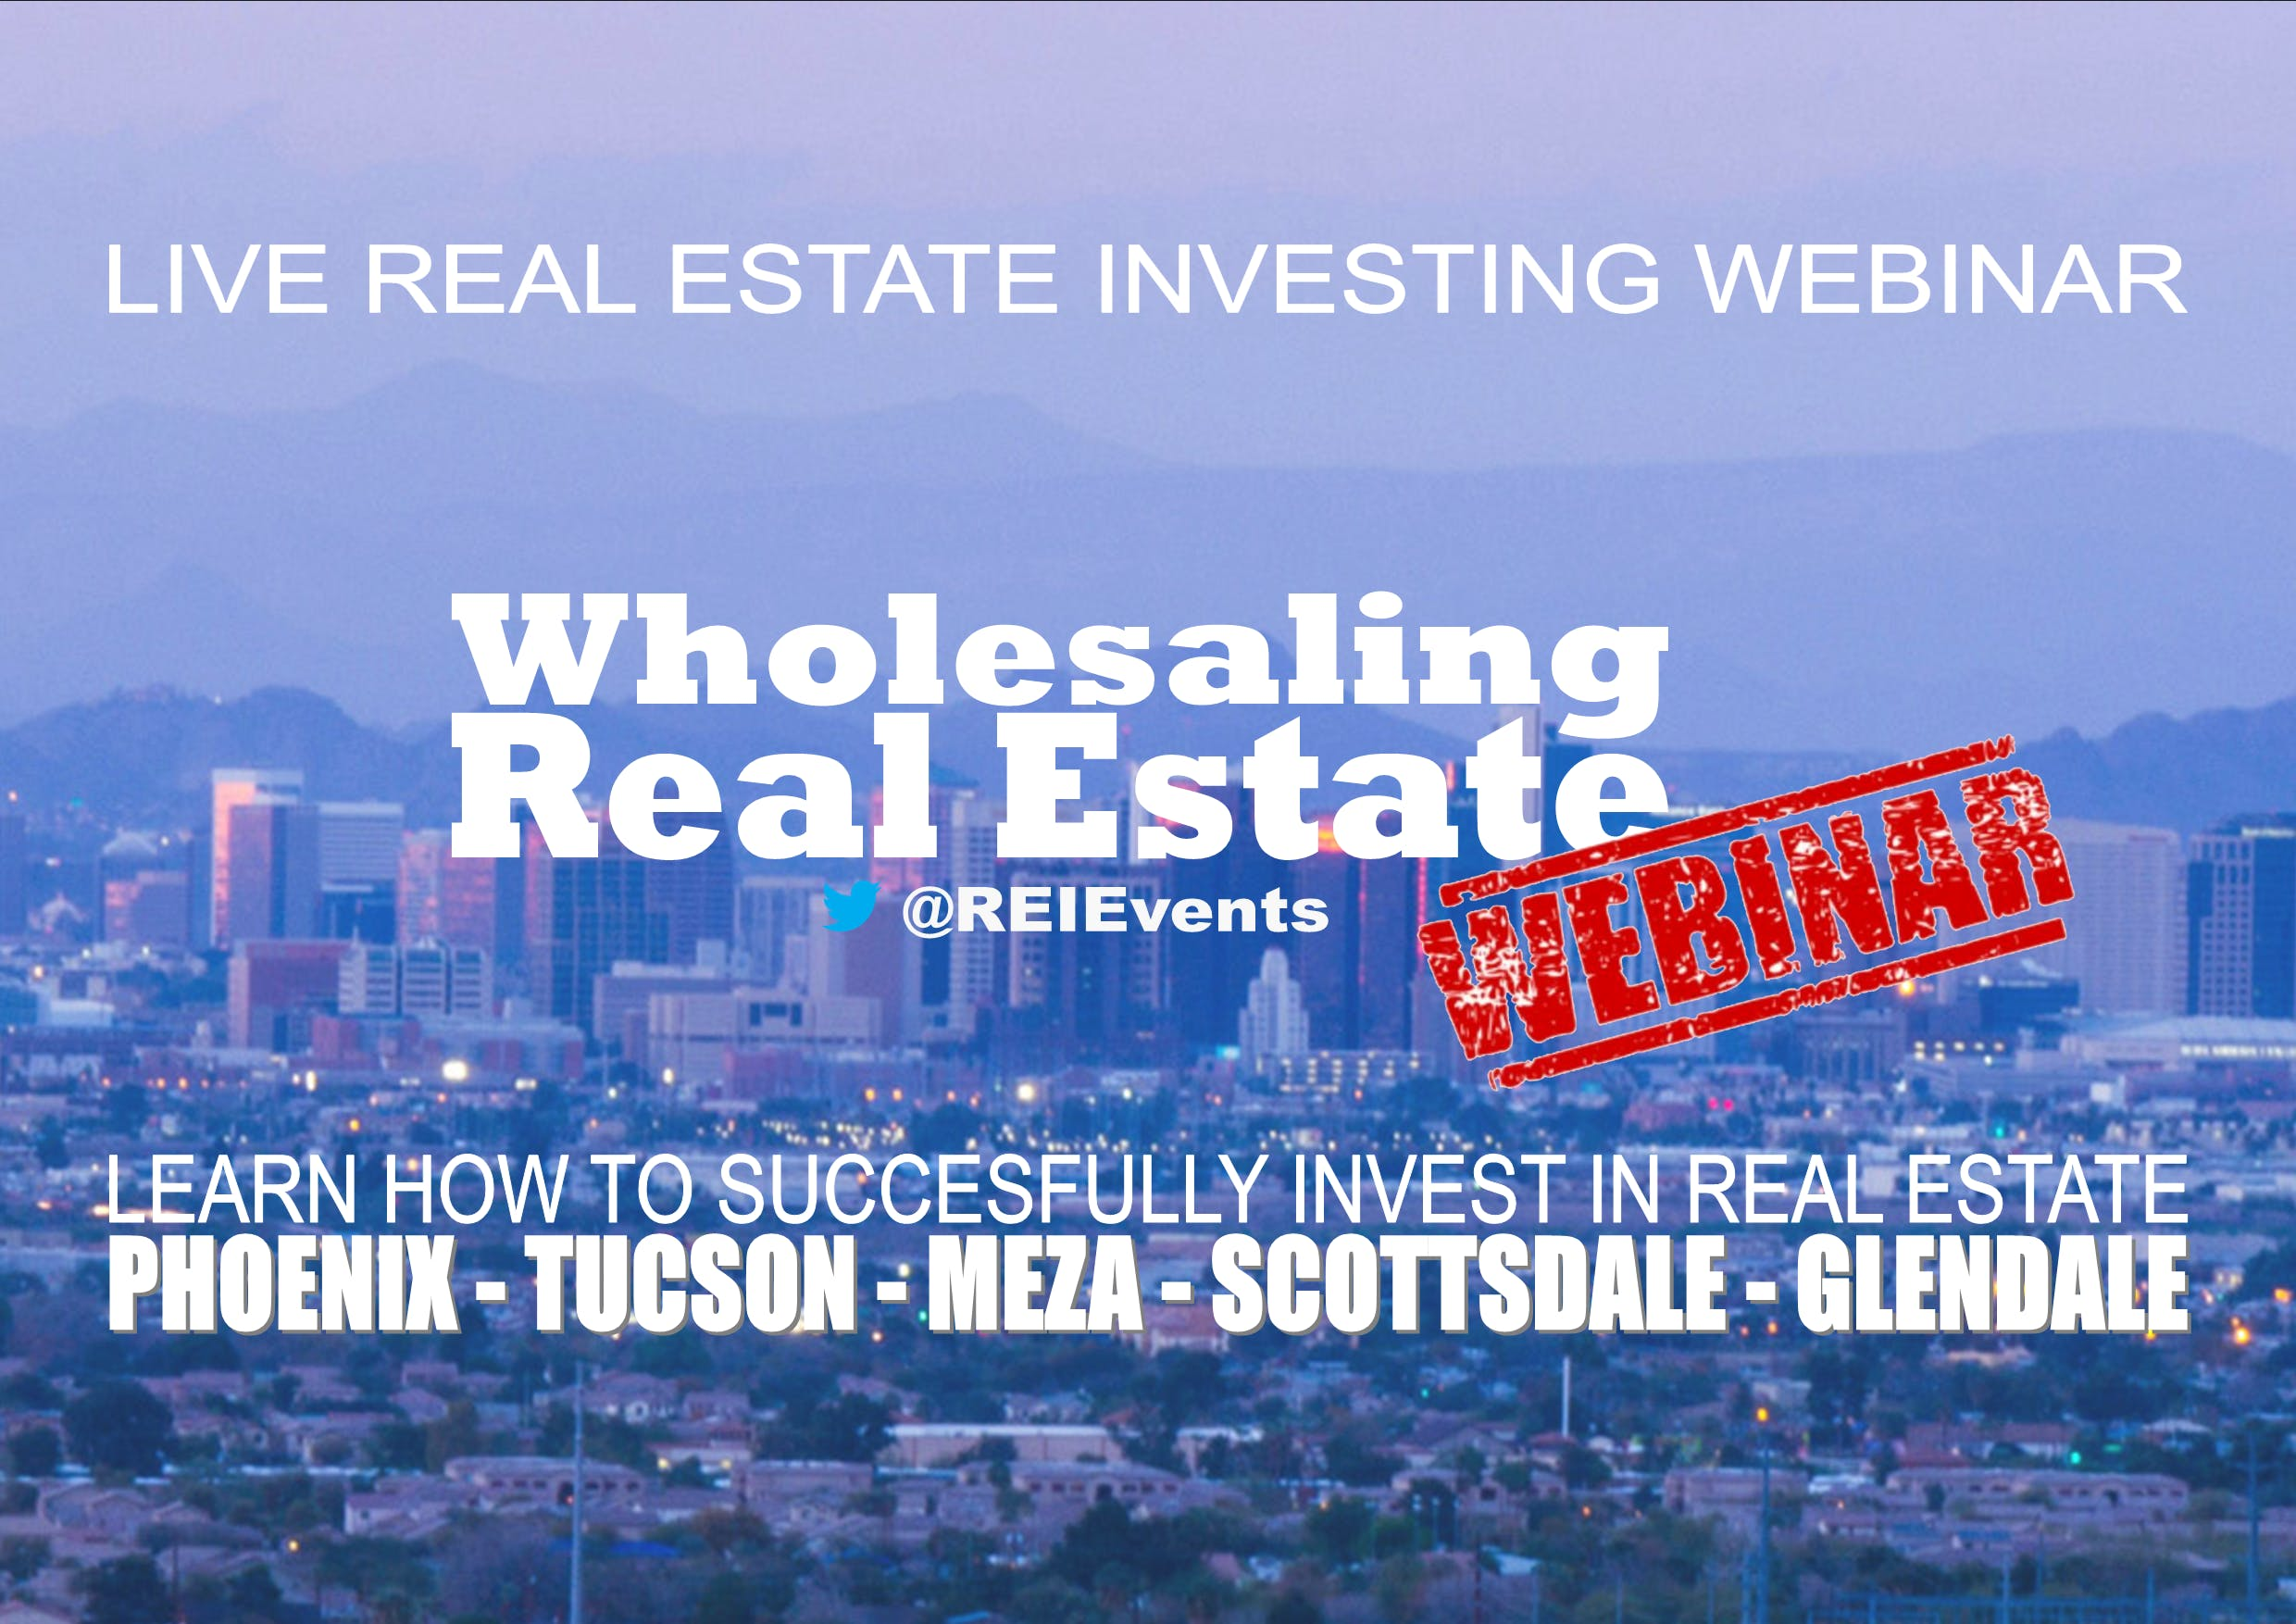 How to Start Wholesaling Real Estate Webinar - Phoenix